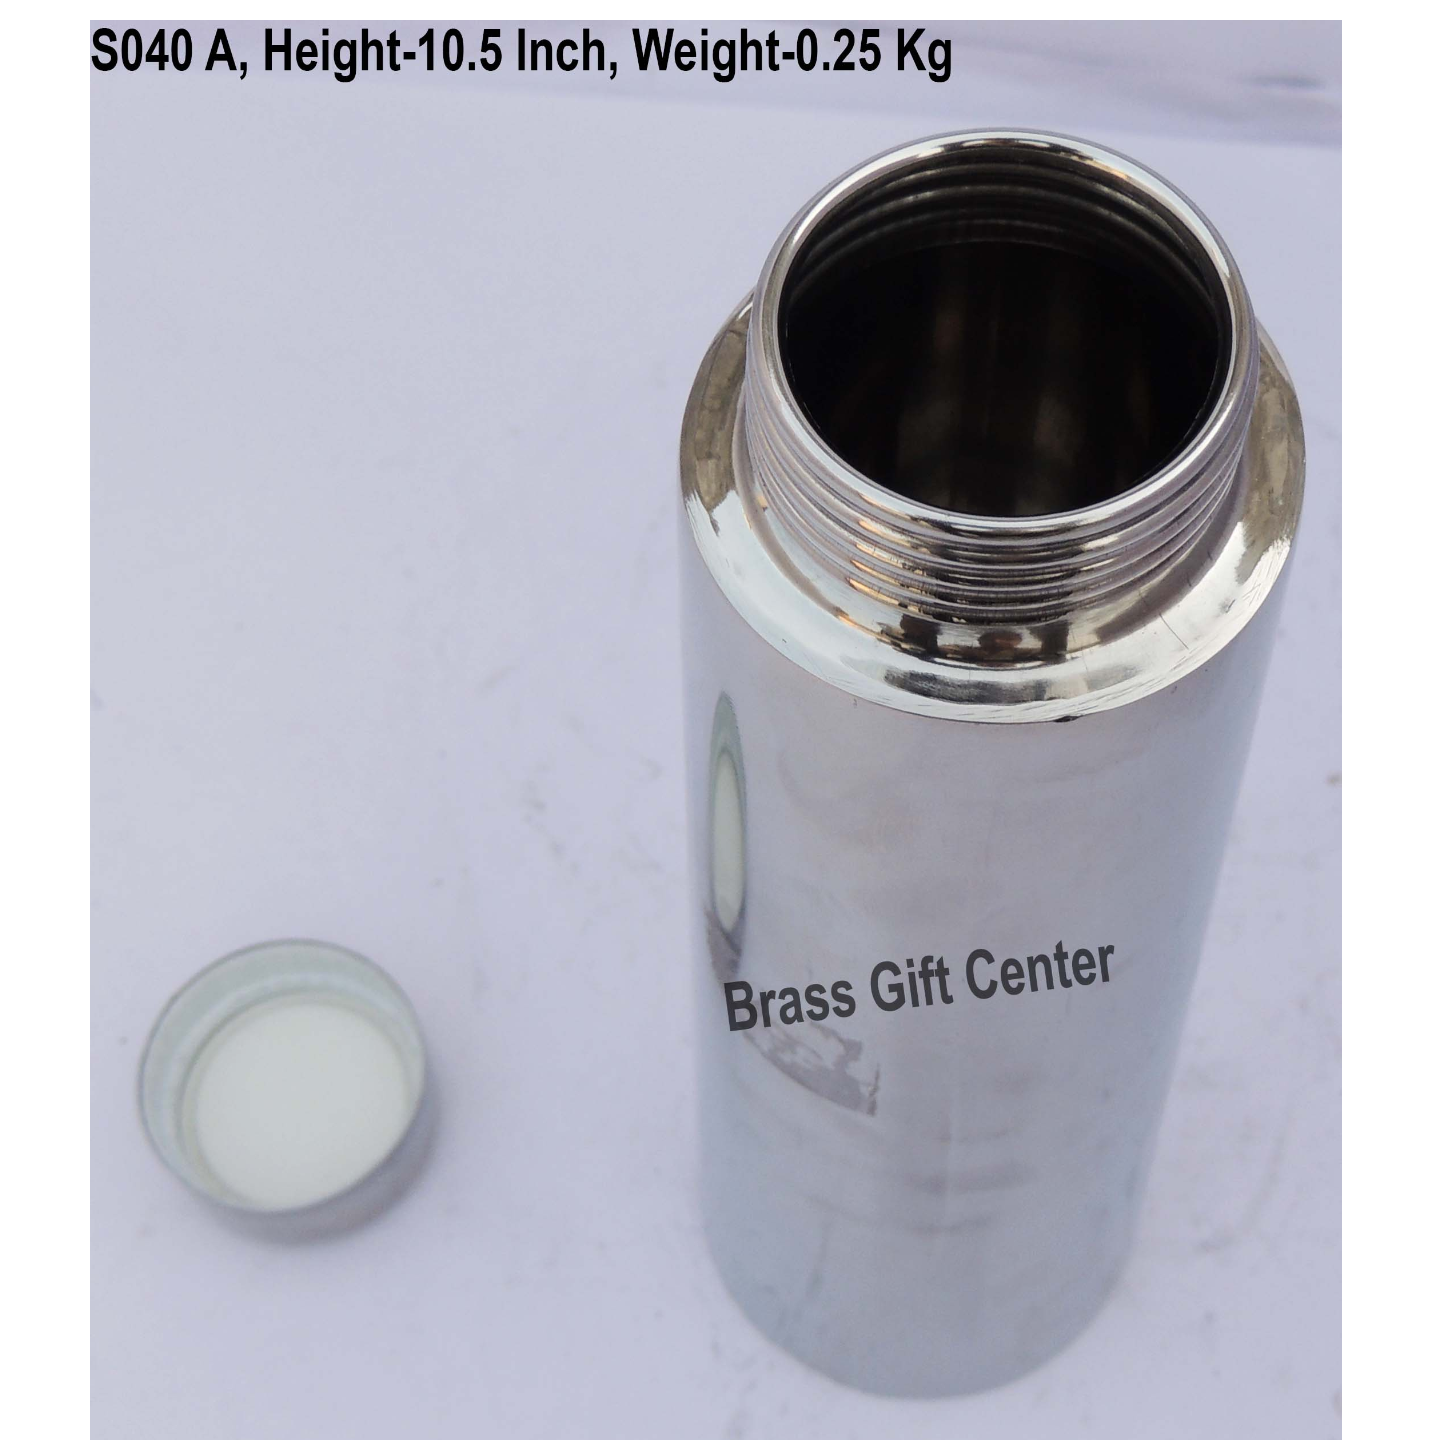 Steel Water Bottle, Capacity 820 ML, Height 10.5 Inch (S040 A)